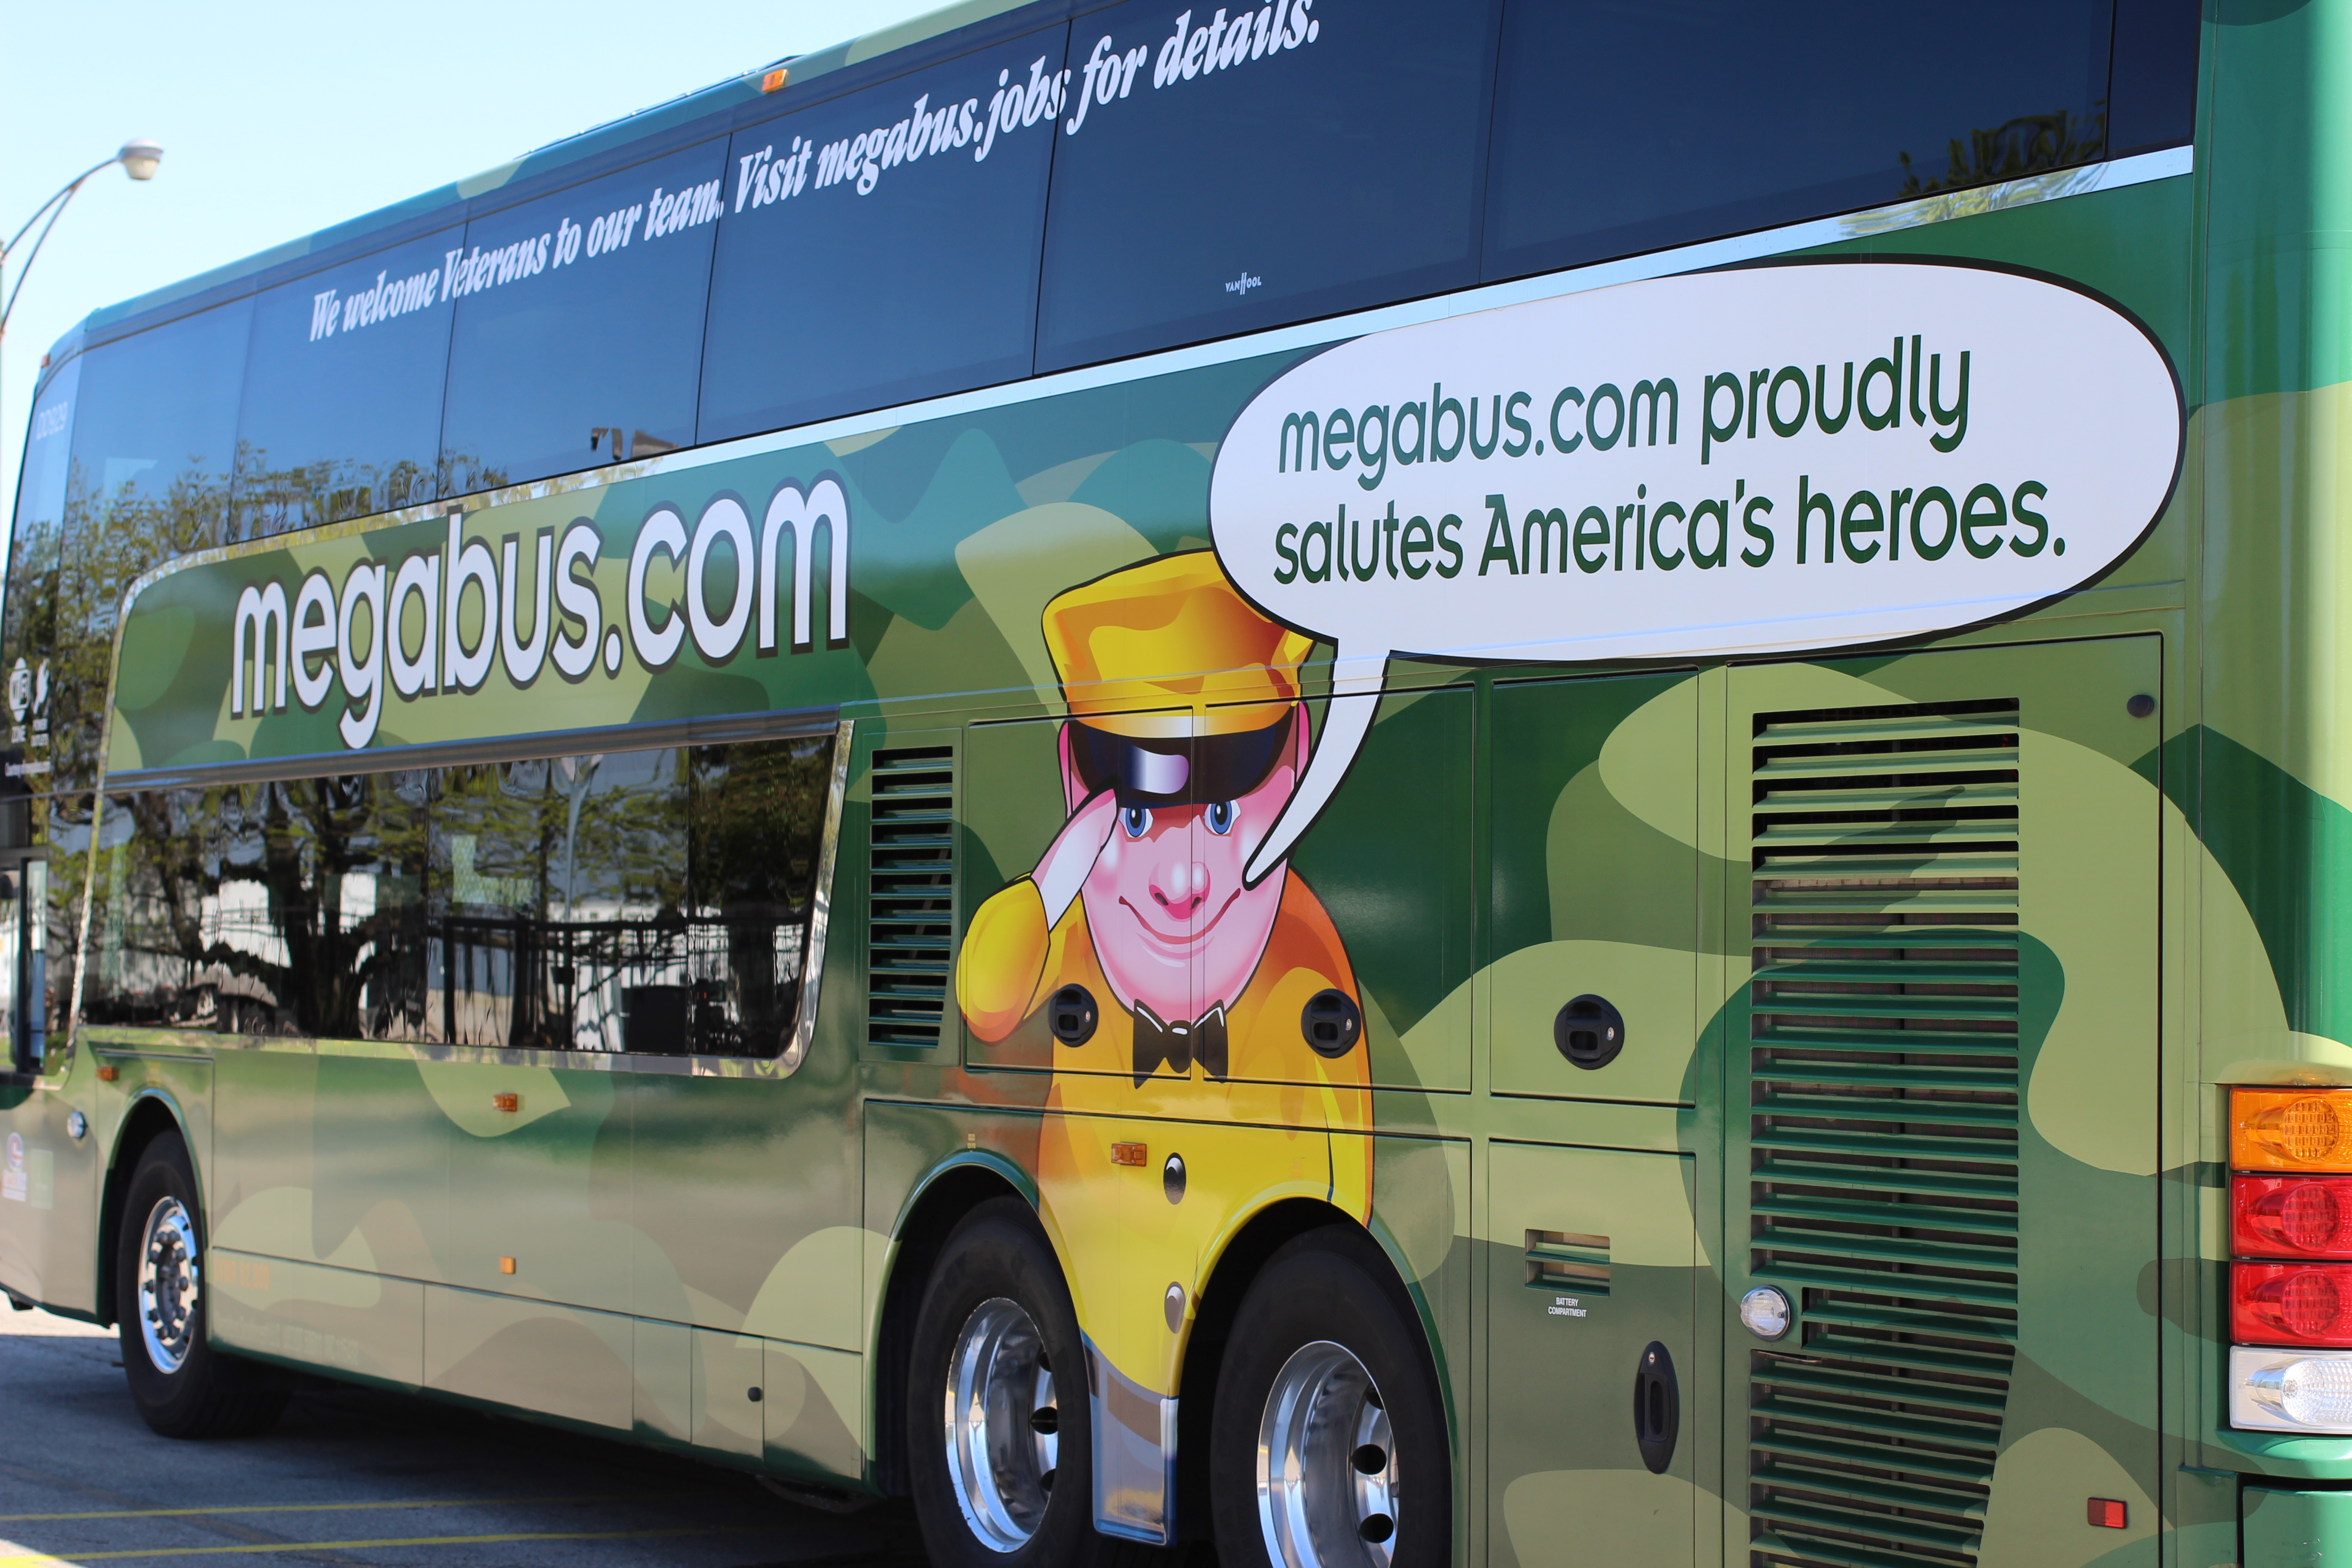 Travel On The Camo Bus and Support Families of Fallen and Disabled Heroes